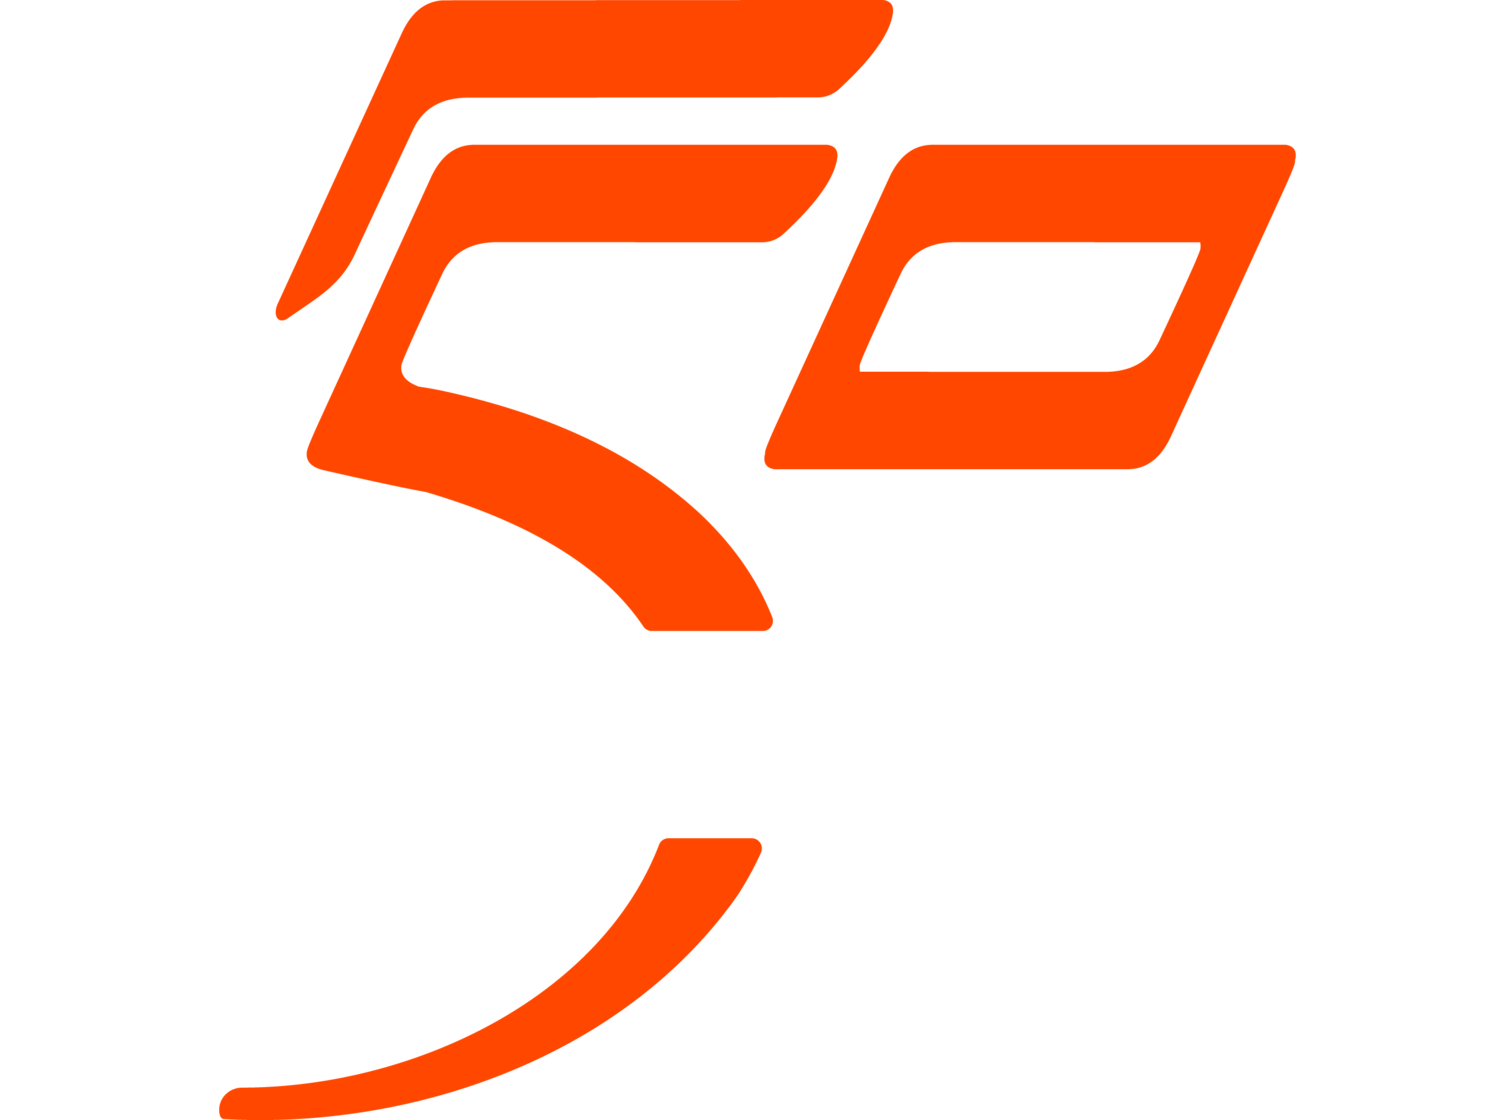 550 PRODUCTIONS